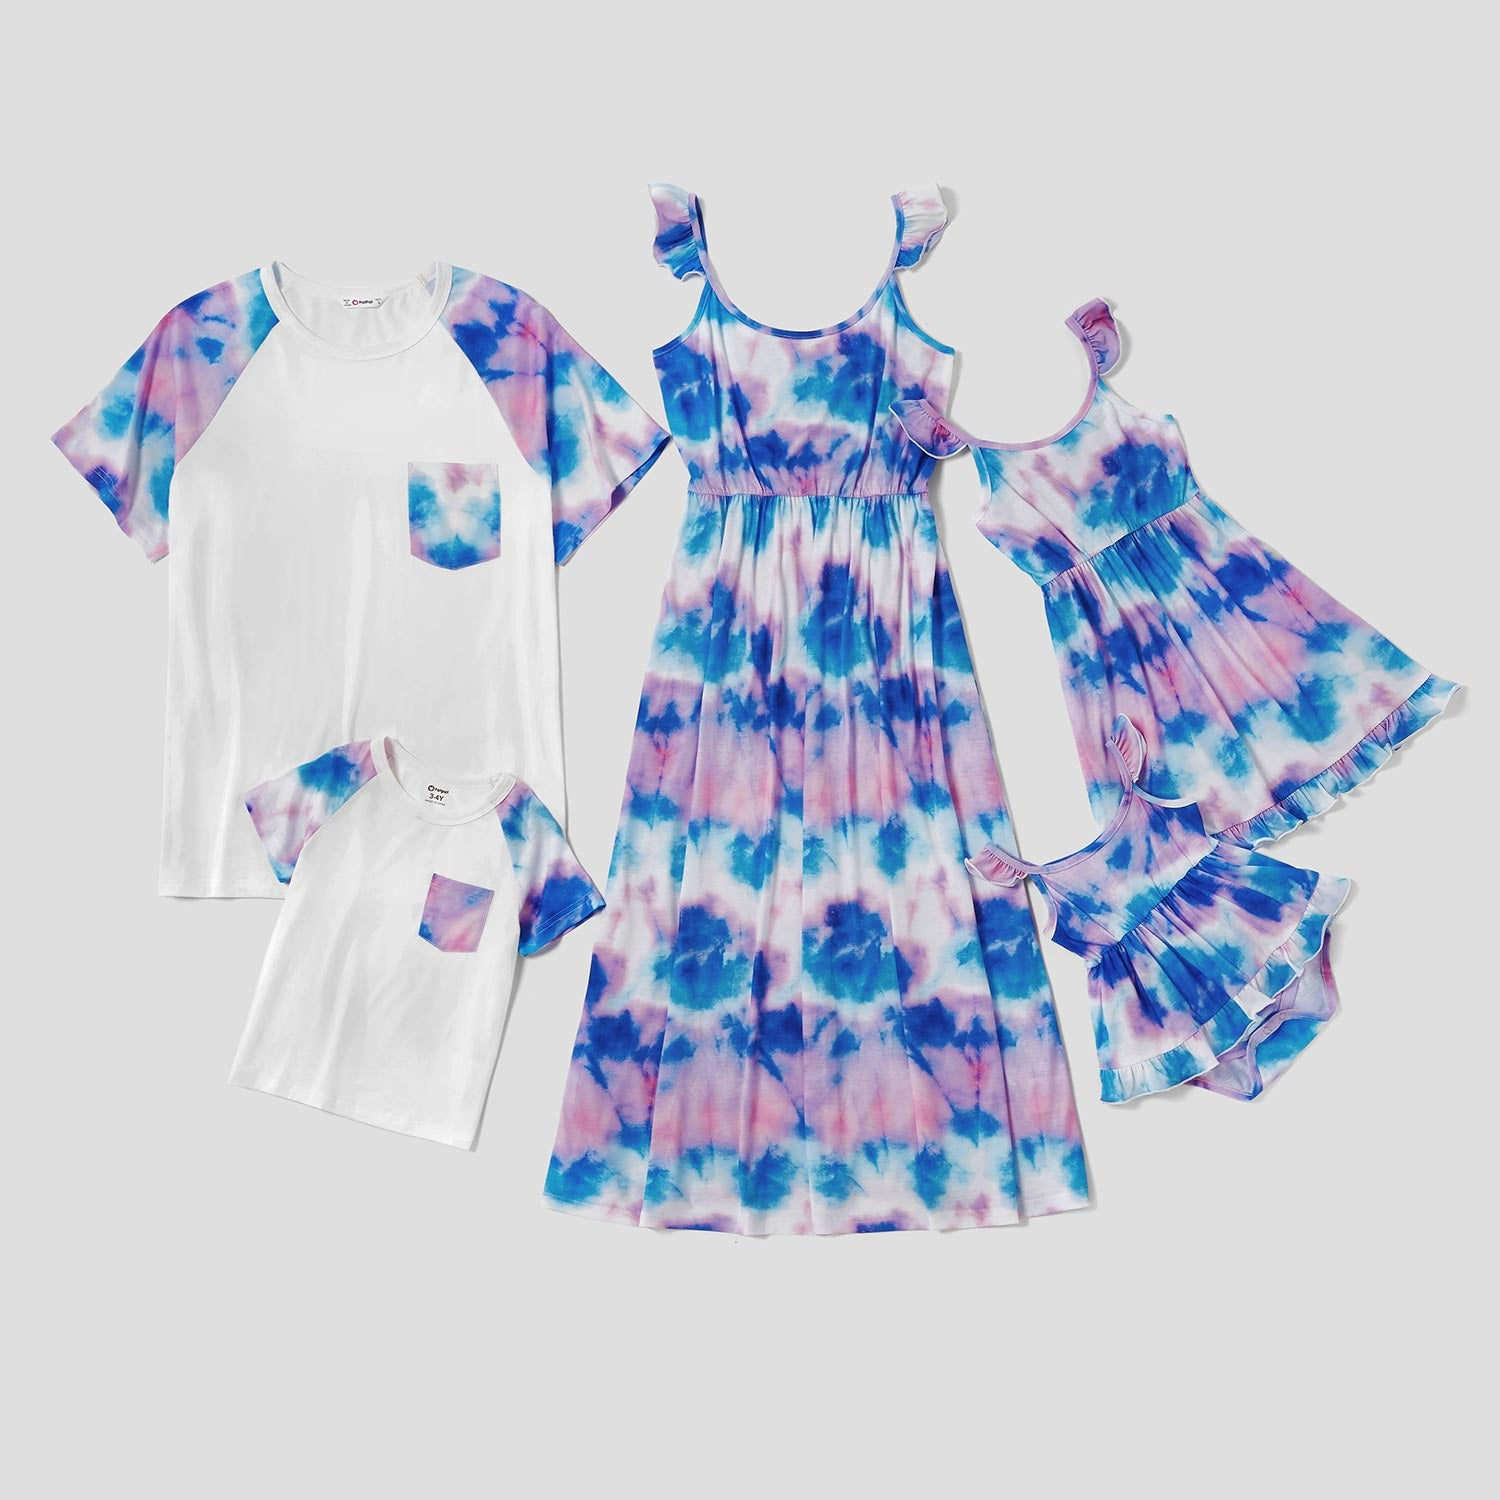 Mosaic Family Matching Tie-Dye Flutter-sleeve Tank Dresses and Colorblock Tops